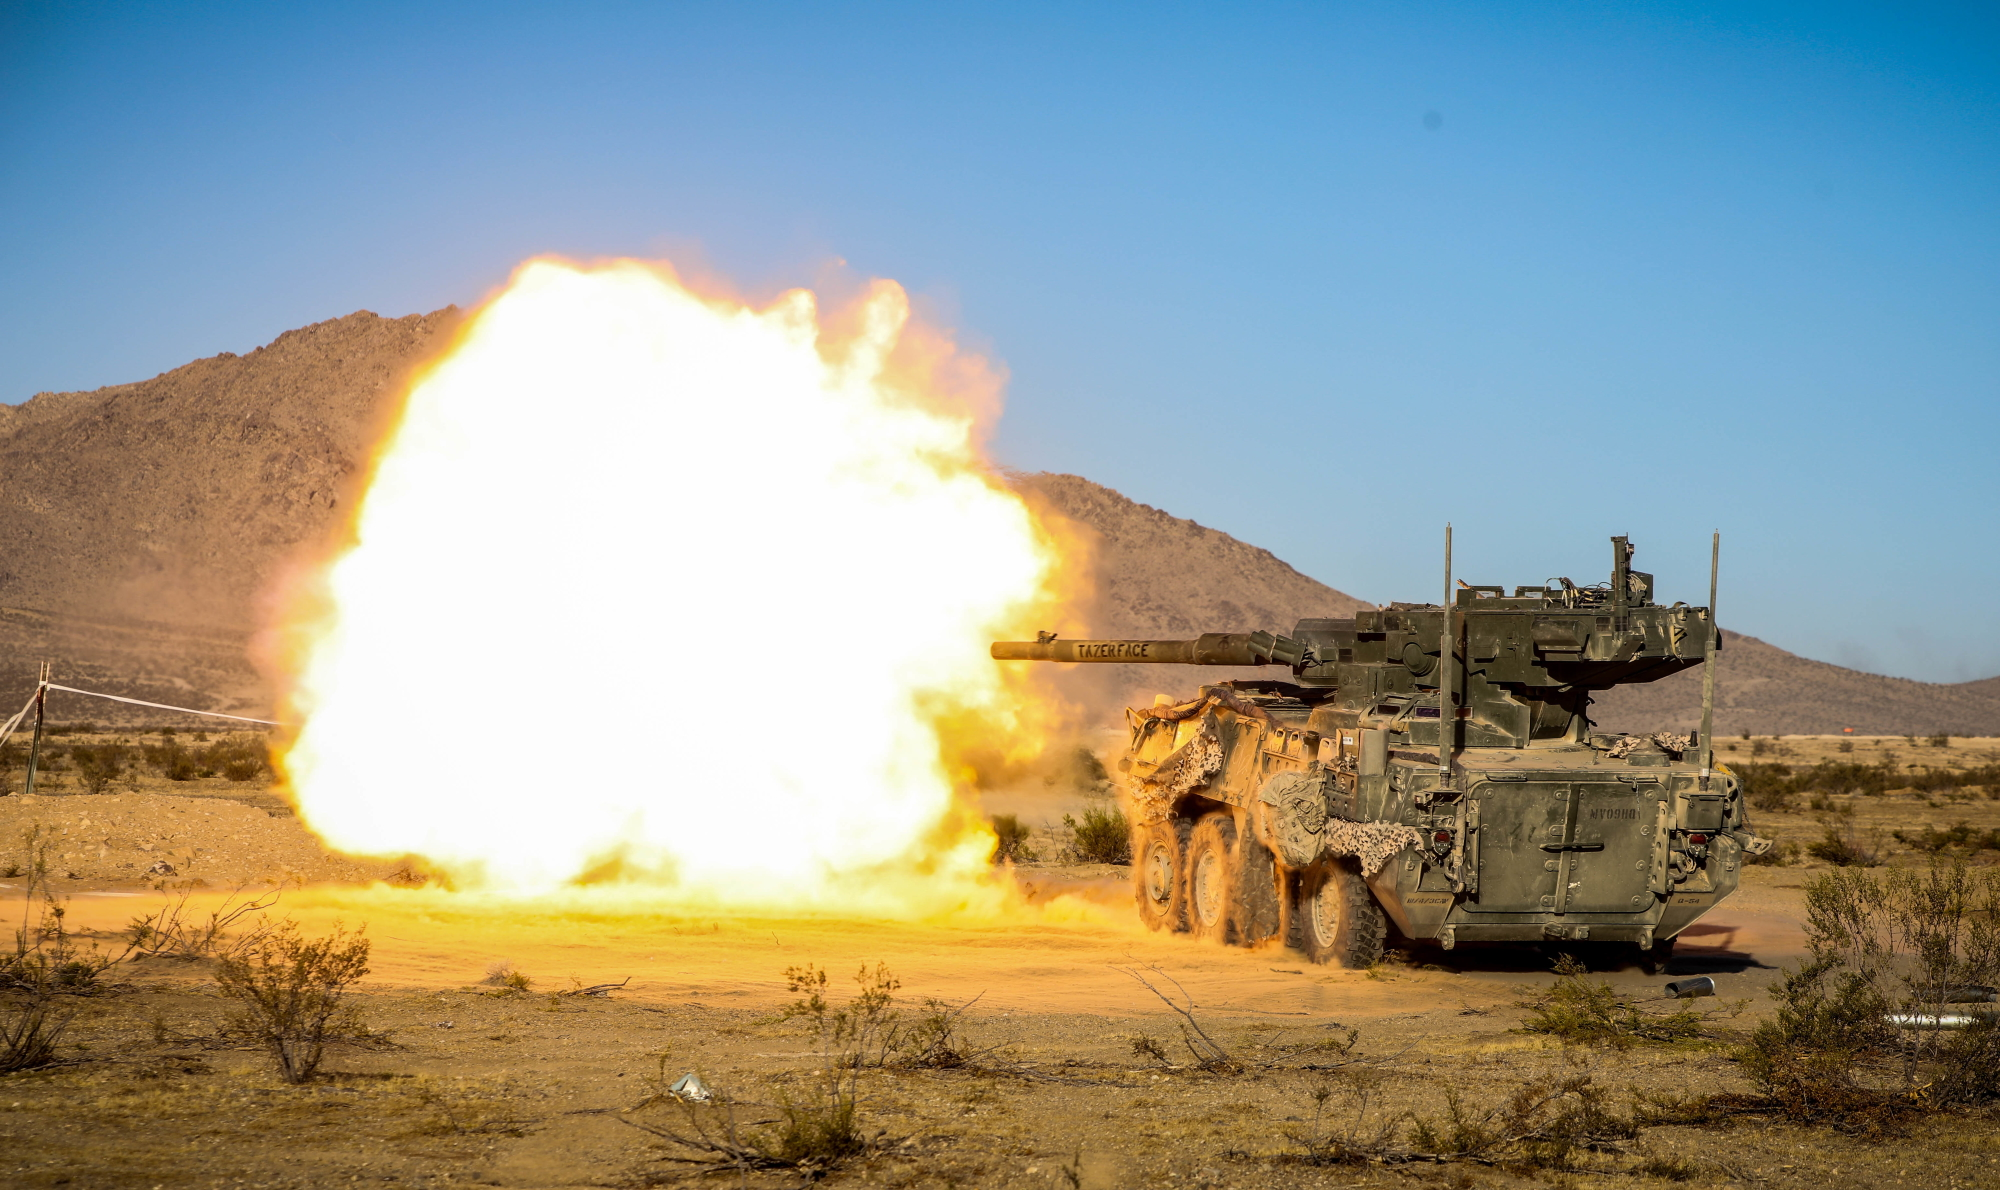 The M1128 Stryker Mobile Gun System assigned to Fort Hood engages simulated enemy targets during live-fire training Nov. 8, 2019, during Decisive Action Rotation 20-02 at the National Training Center in Fort Irwin, Calif. (Spc. Kyler Chatman/Army)